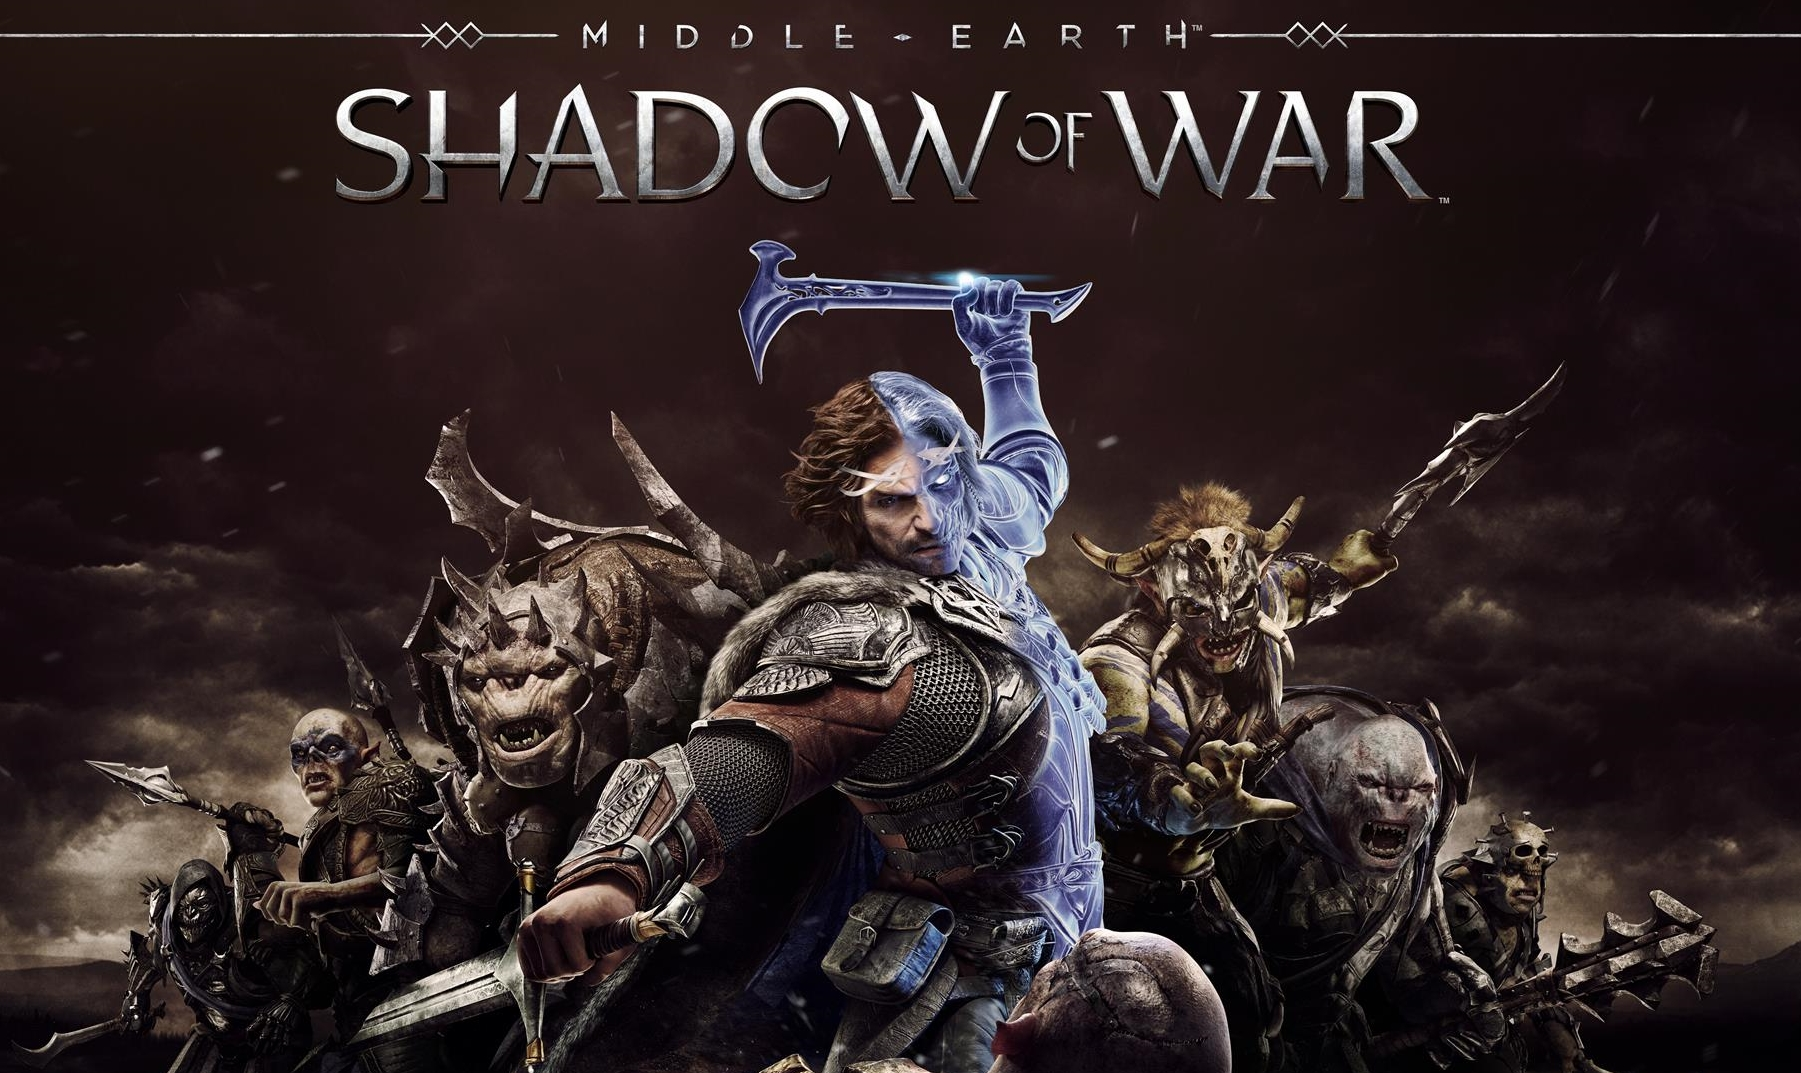 ¡Por fin habrá Multiplayer en Shadow of War!